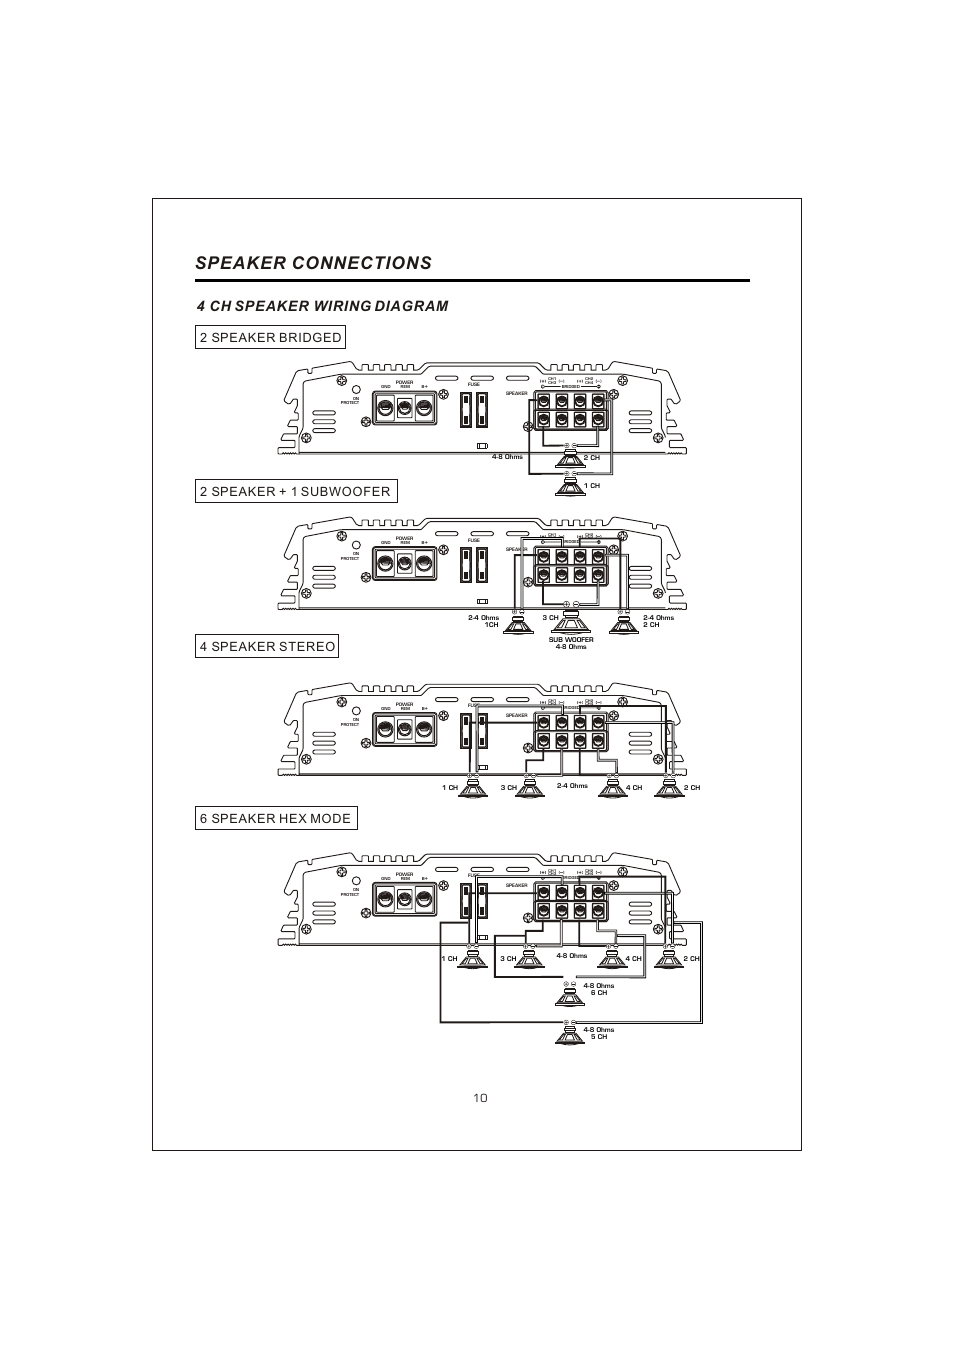 medium resolution of  12 speaker connections 4 ch speaker wiring diagram interfire audio tunn t 2130 user manual page 12 20